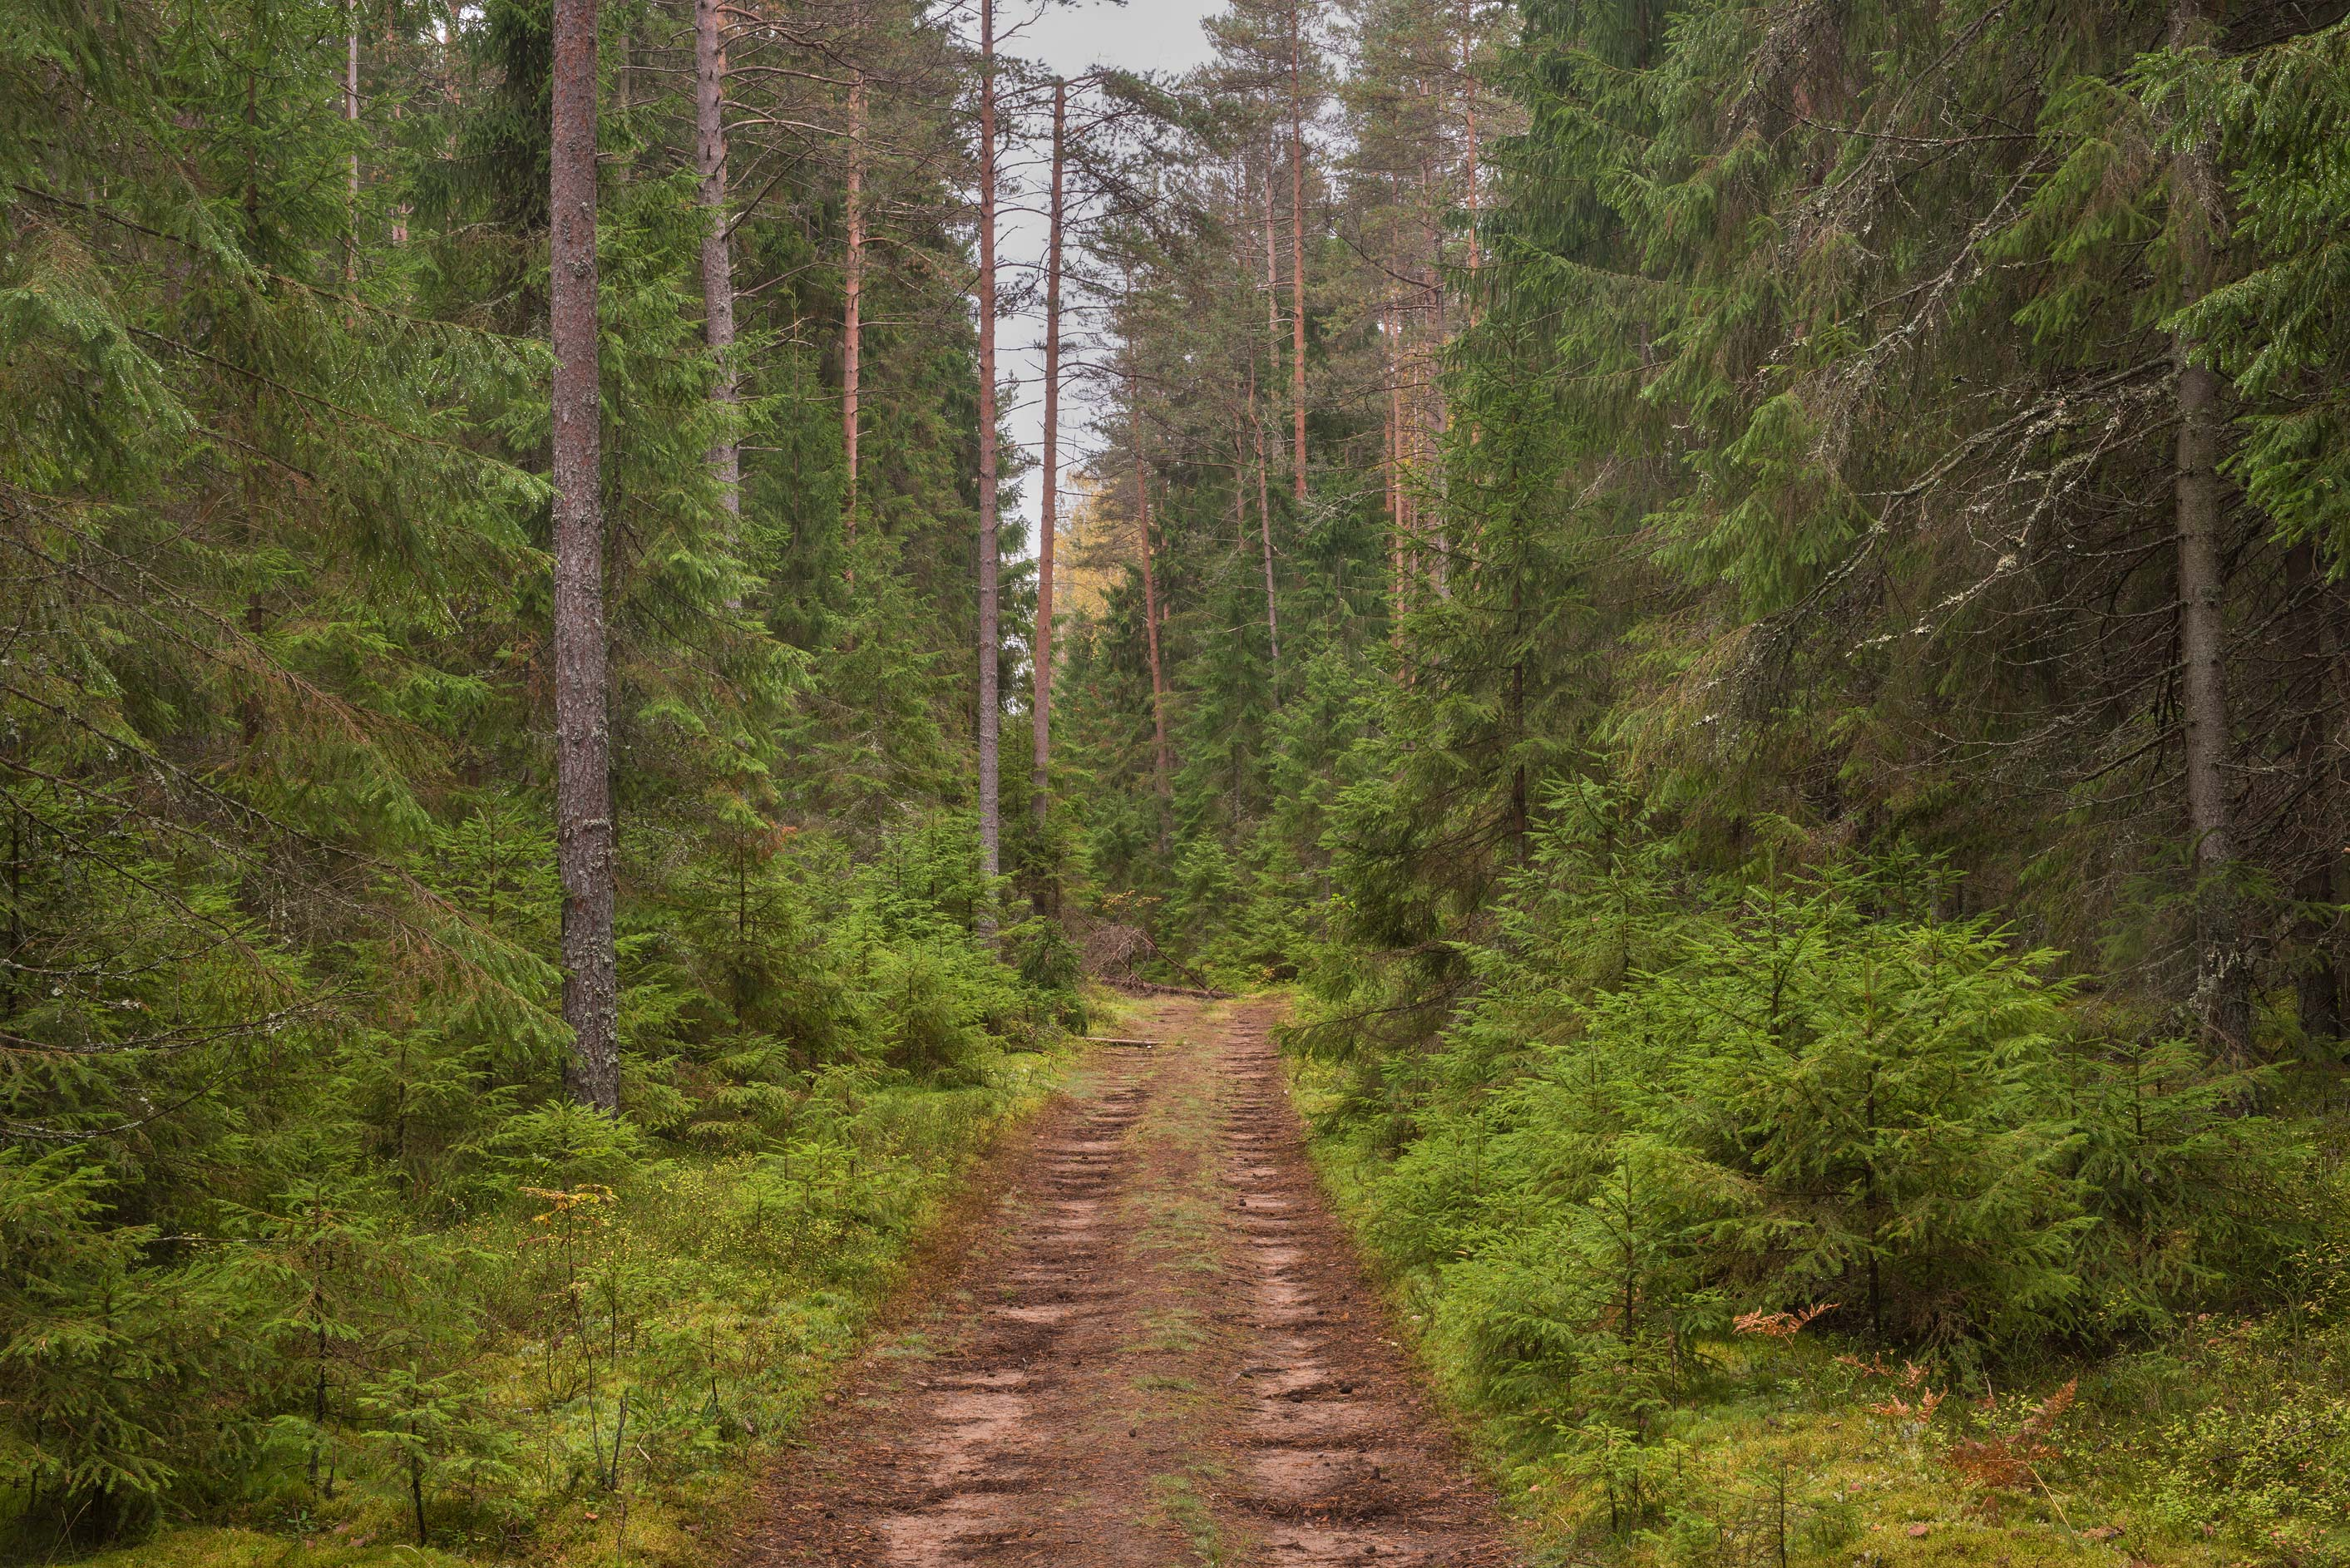 Road in a spruce forest near Zelenogorsk, 25 miles north-west from St.Petersburg. Russia